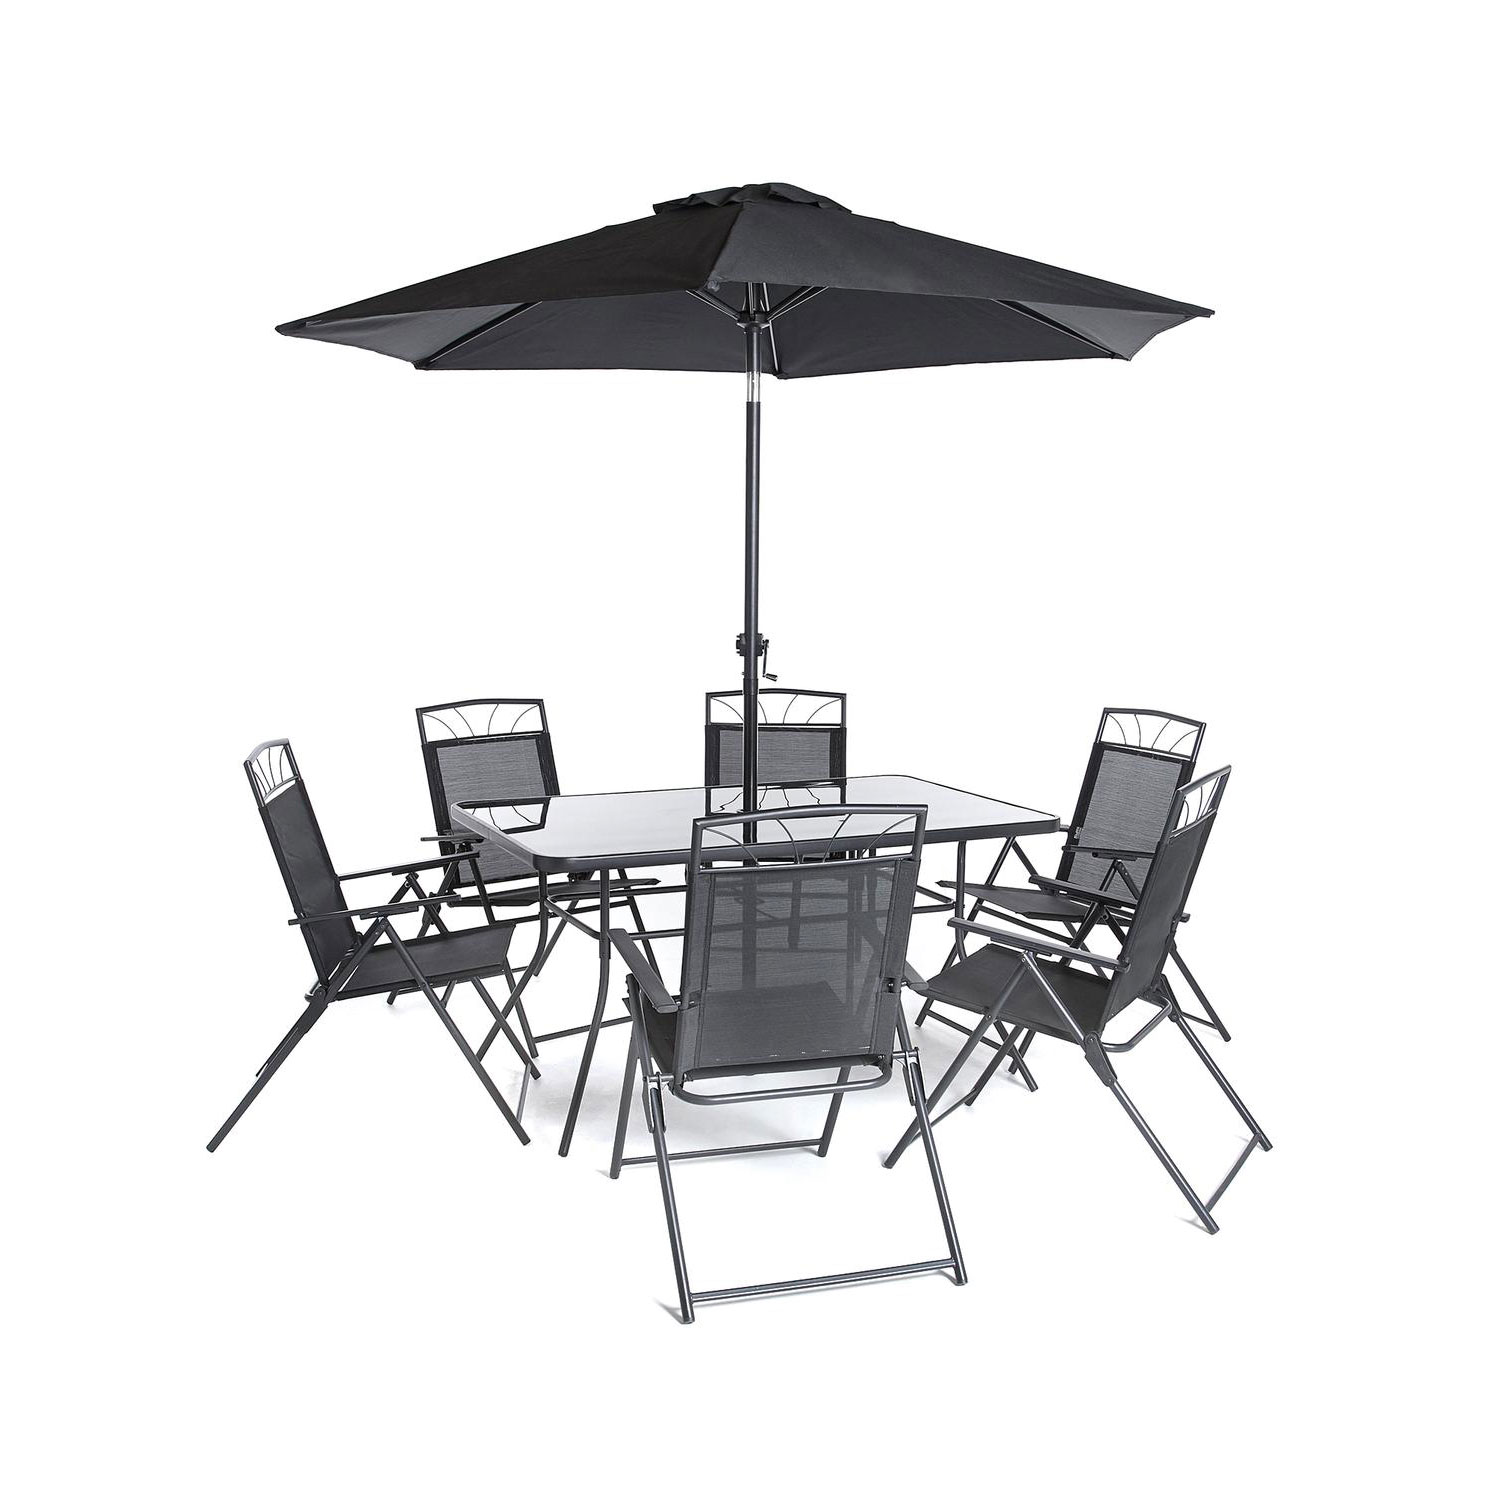 Memphis Furniture Company: 8pc Memphis Steel Dining Collection Black